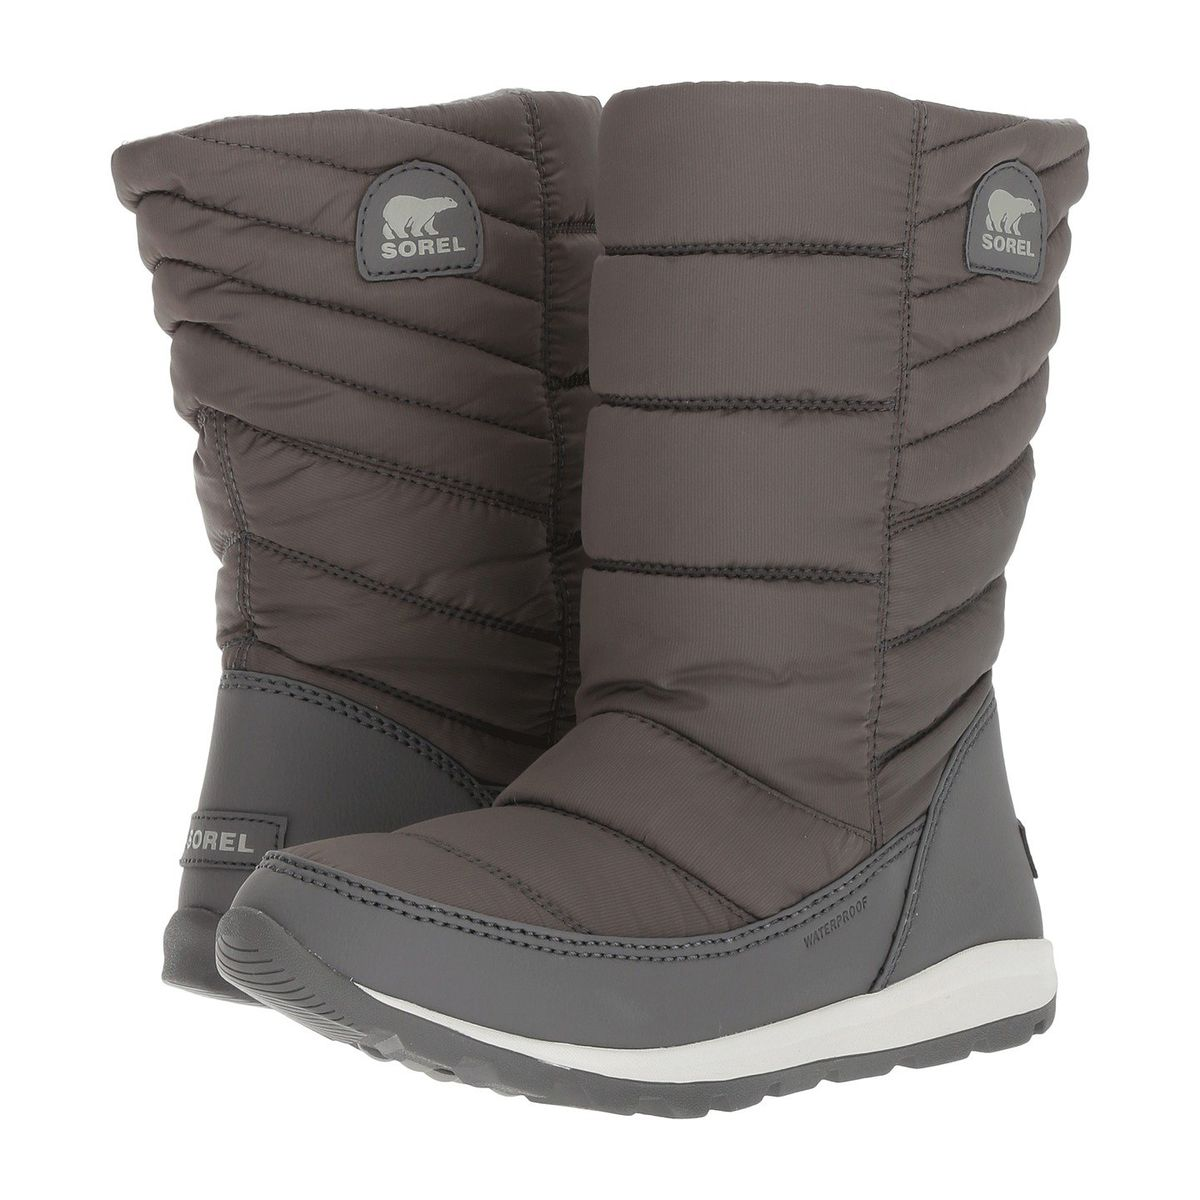 Grey puffy winter boots